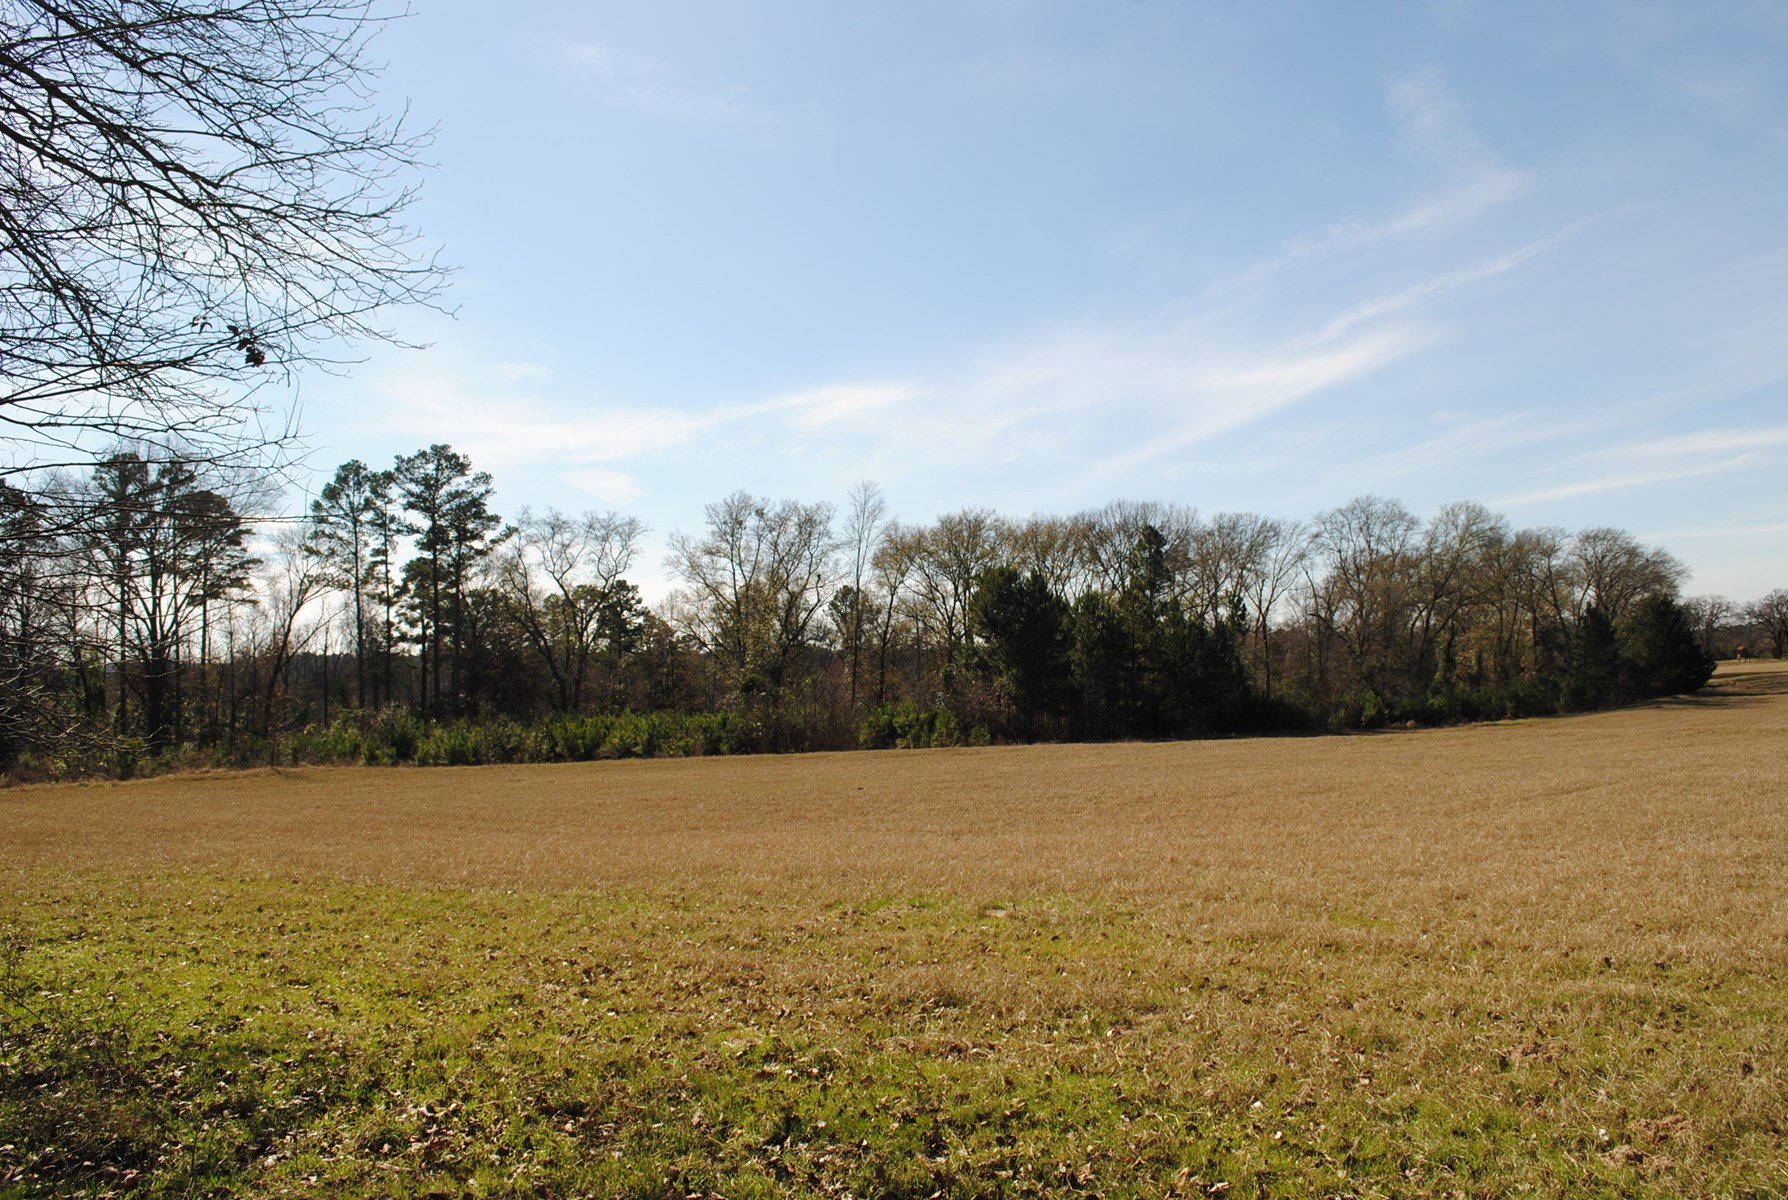 Rural Land For Sell Tyler Tx  Acreage Pasture Land